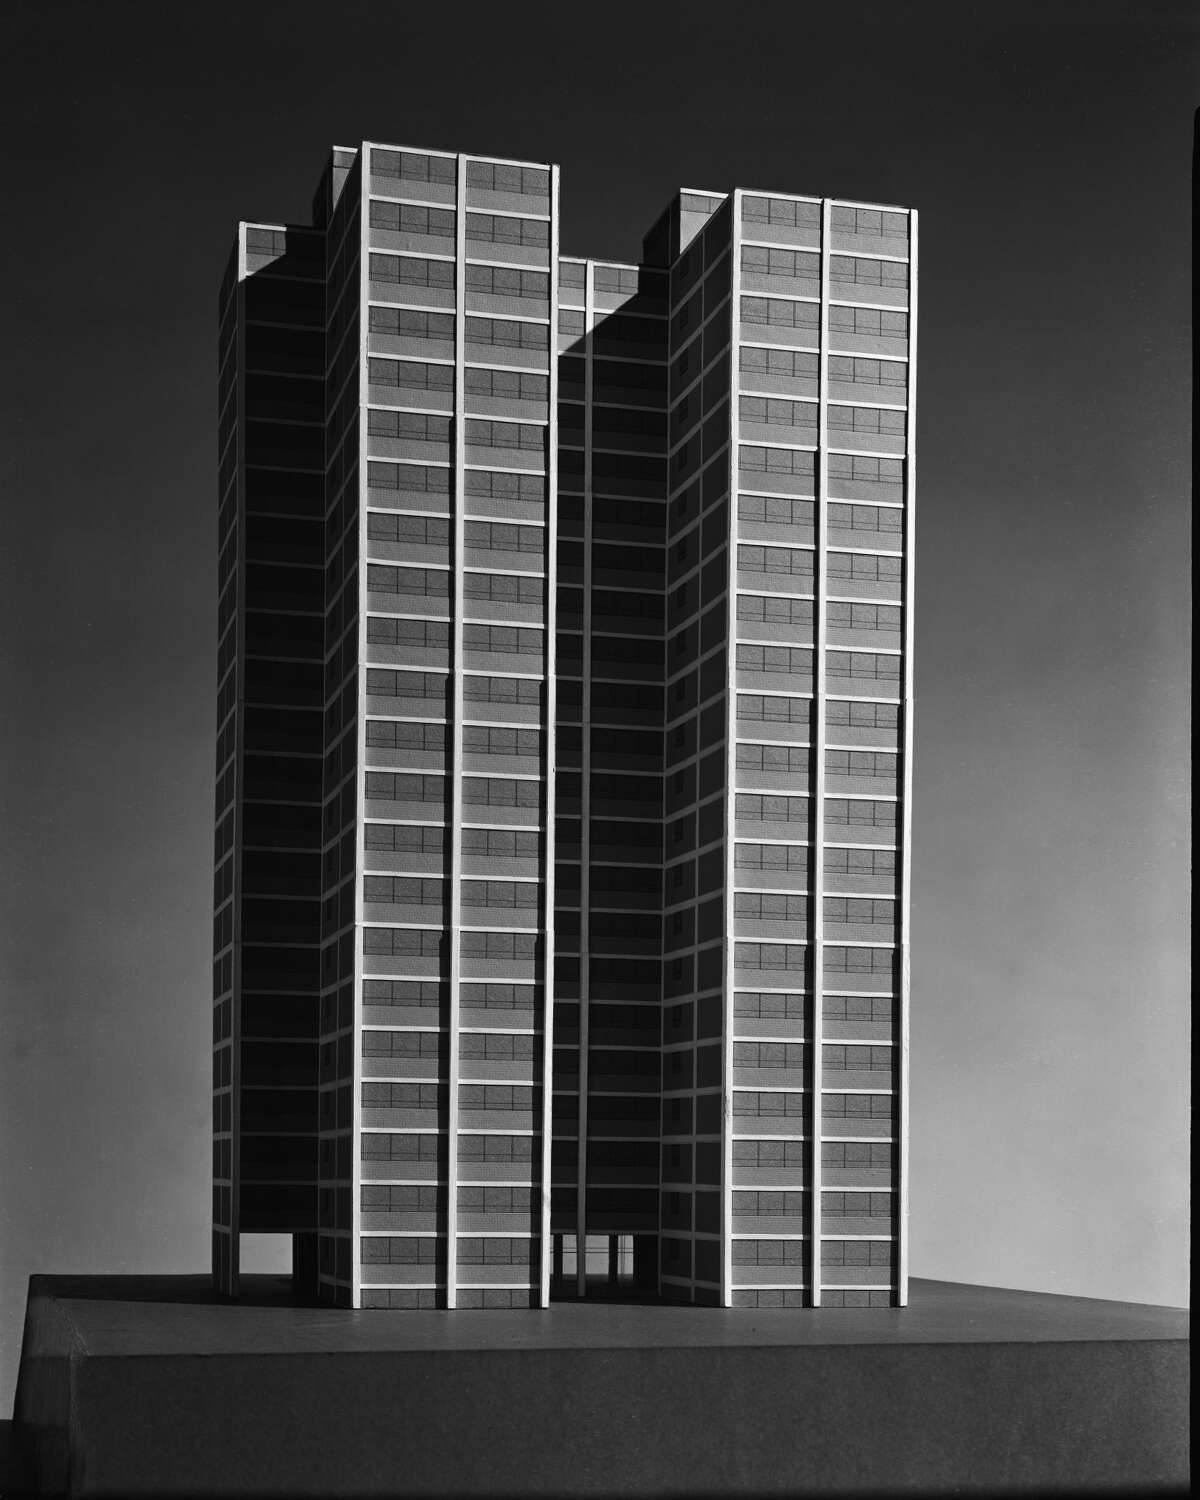 View of architectural model of Promontory Apartments building, showing rear elevation, Chicago, IL, 1946. (Photo by Hedrich Blessing Collection/Chicago History Museum/Getty Images)